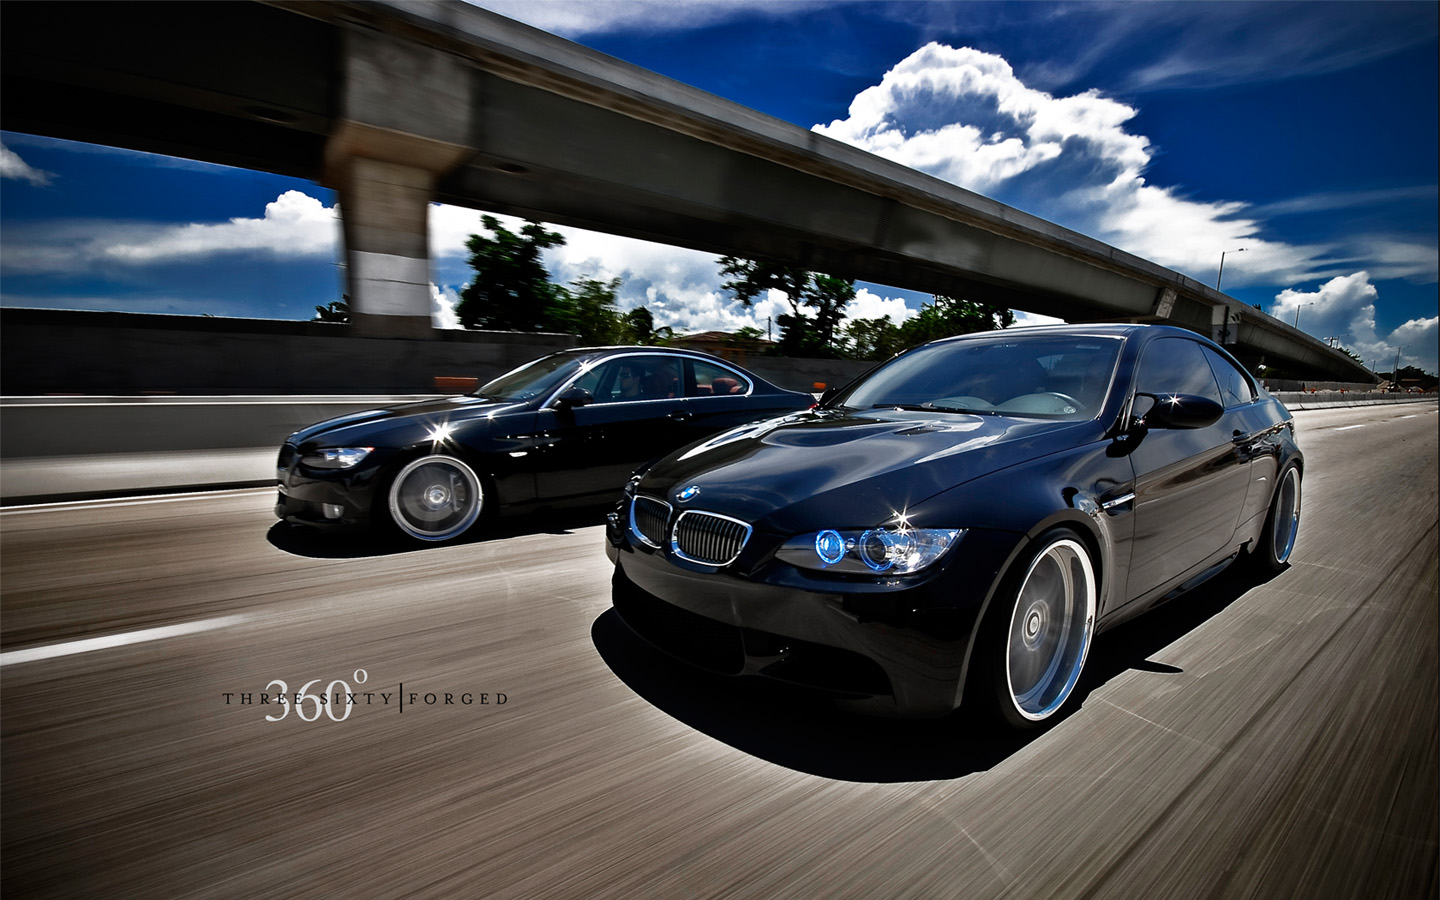 BMW Cars Awesome Wallpaper